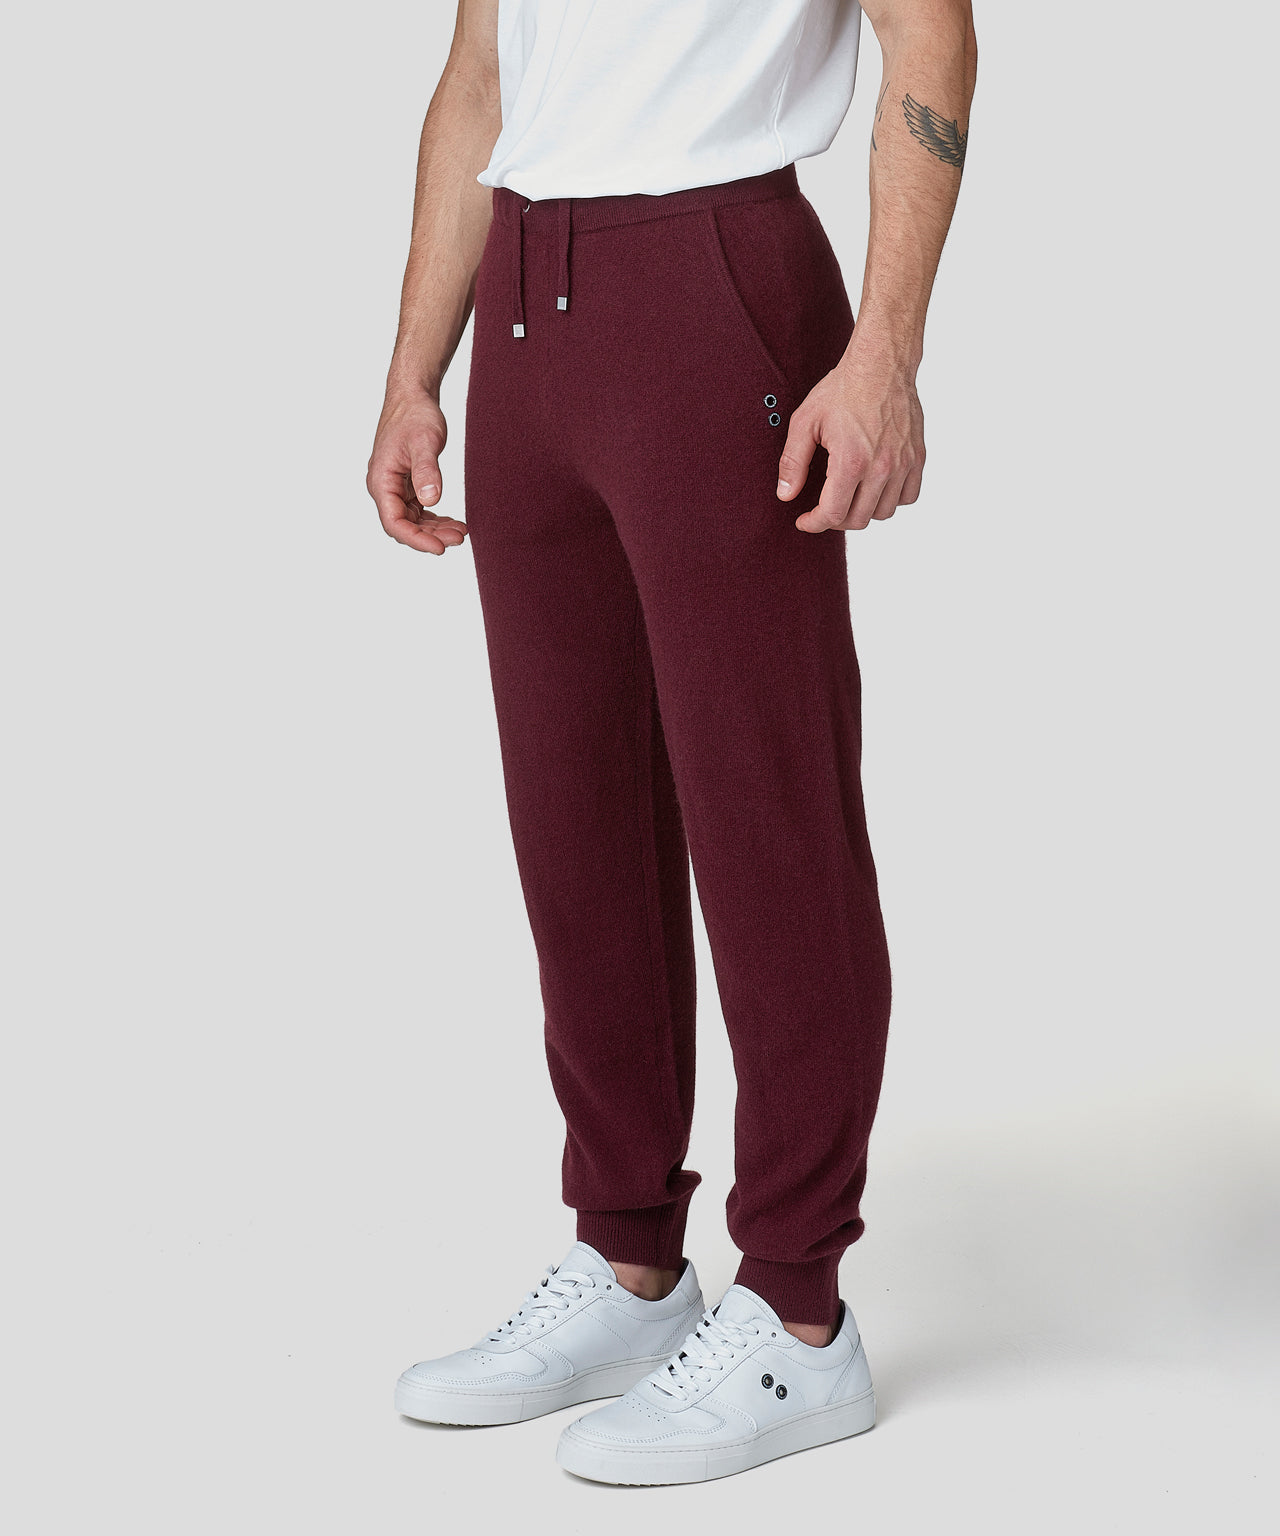 Cashmere Pants - burgundy red